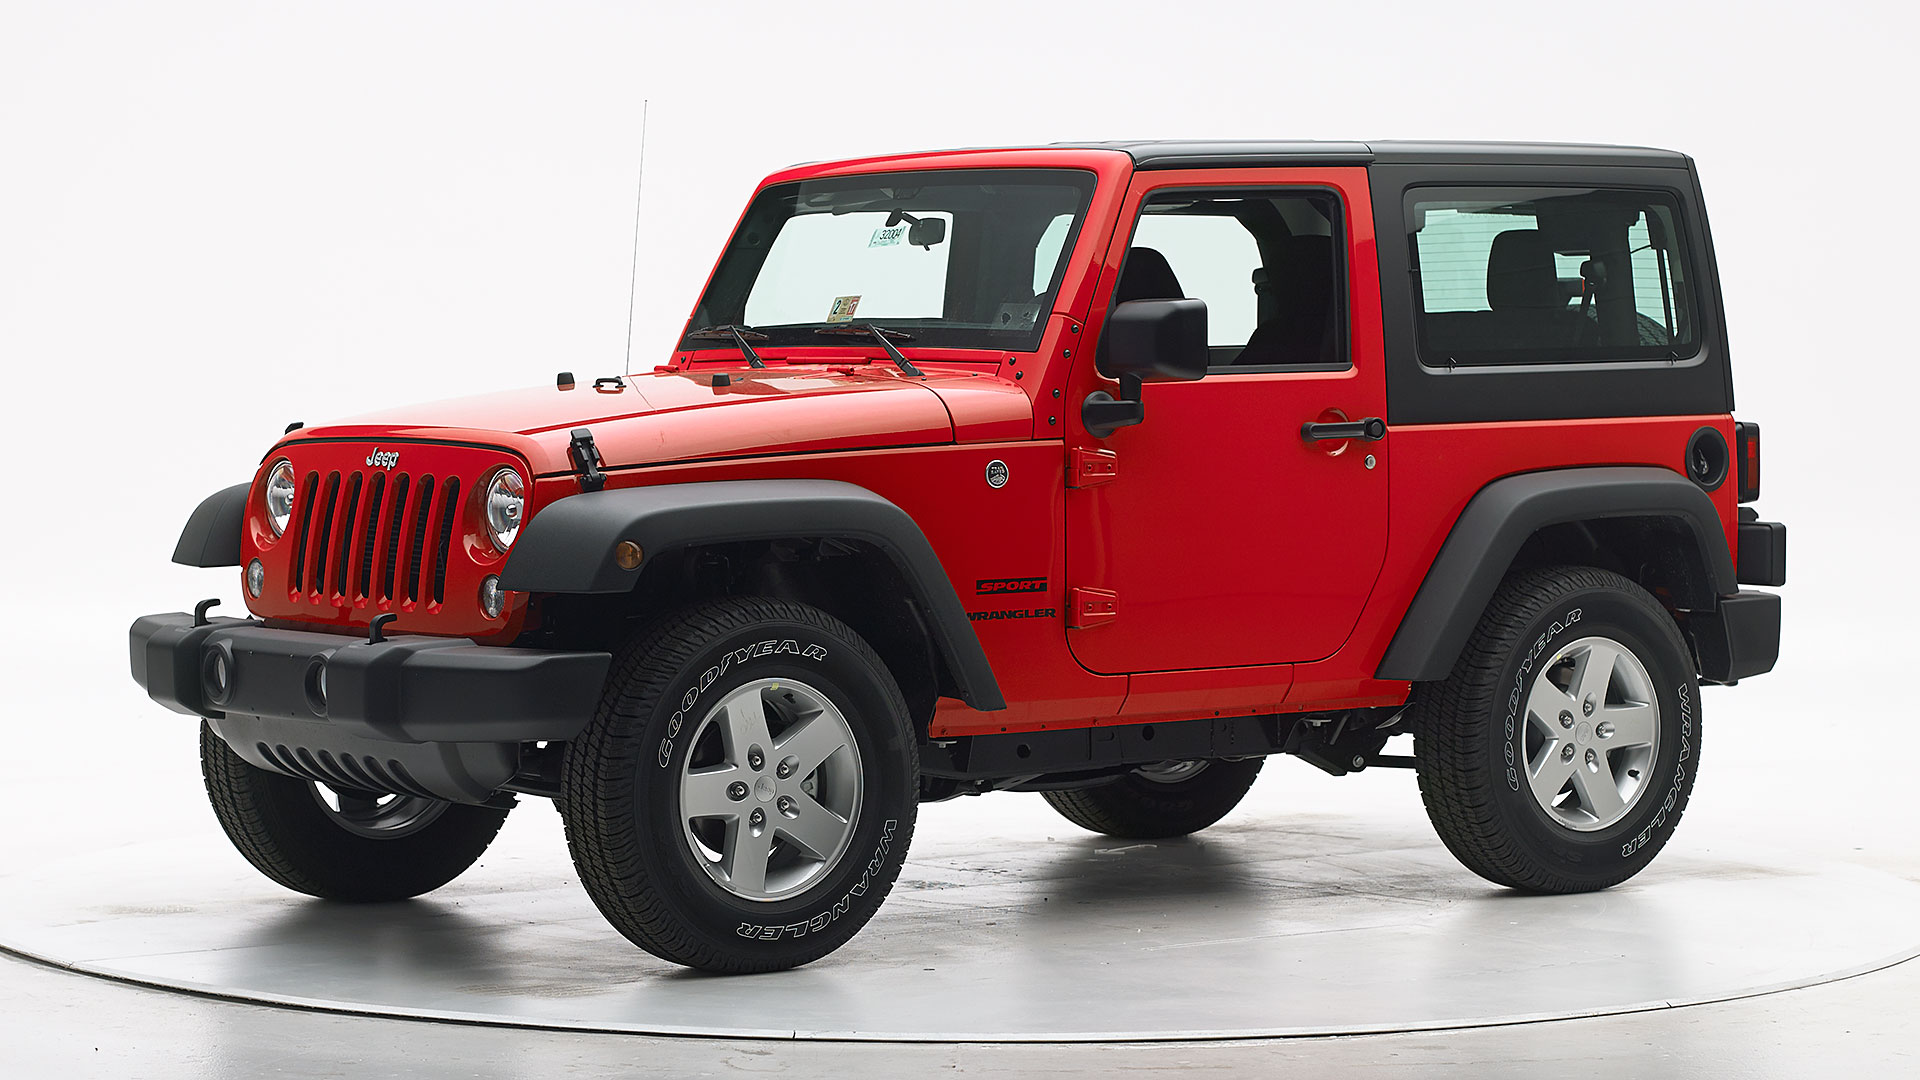 2017 Jeep Wrangler 2-door SUV